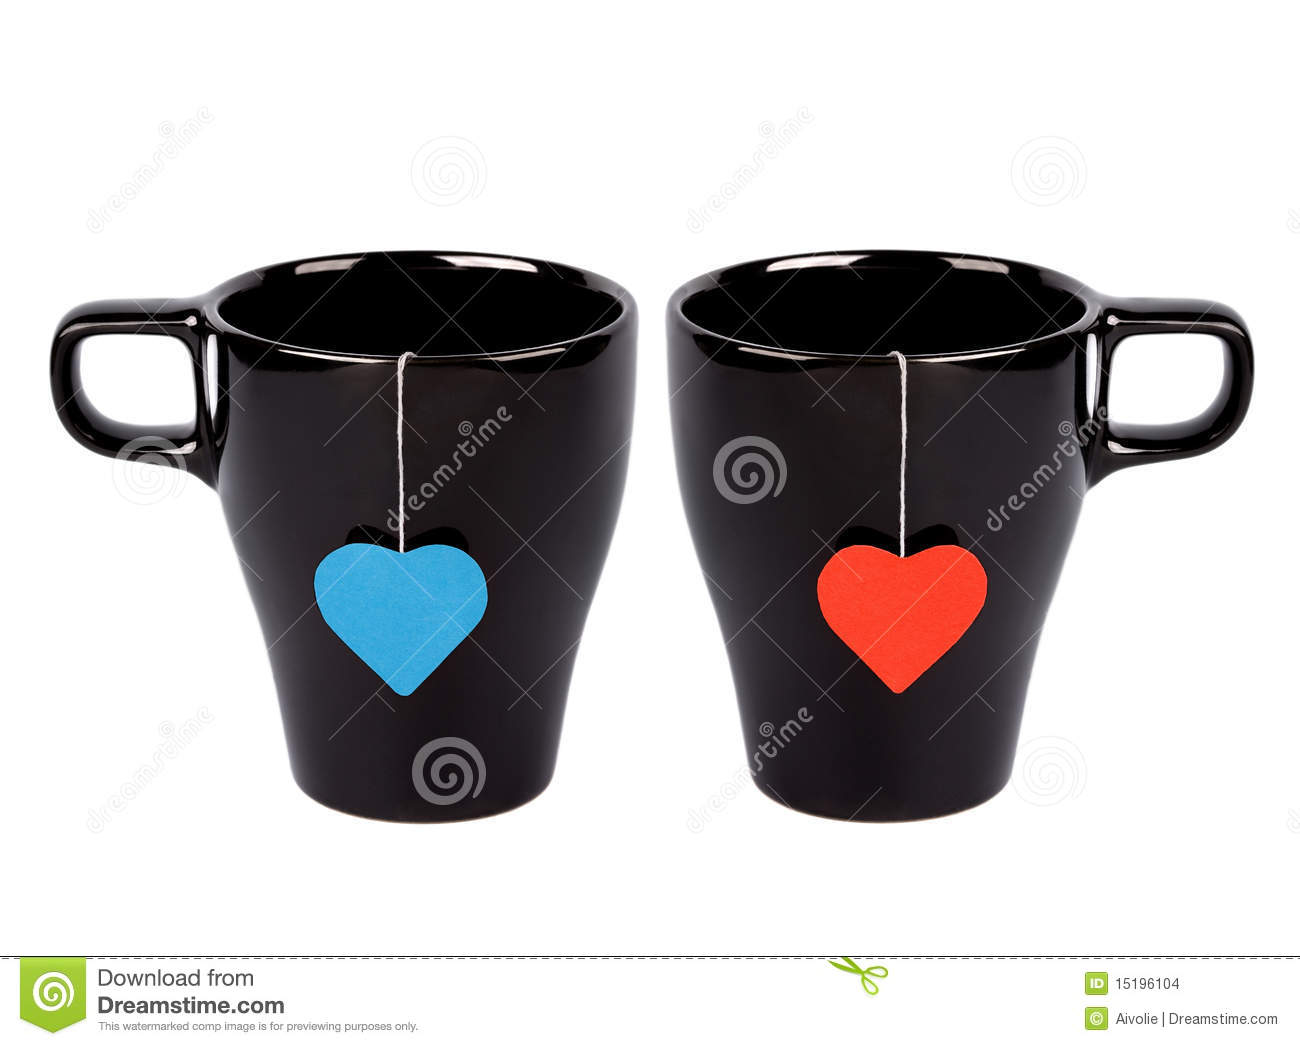 Tea bags with heart-shaped lables in cups